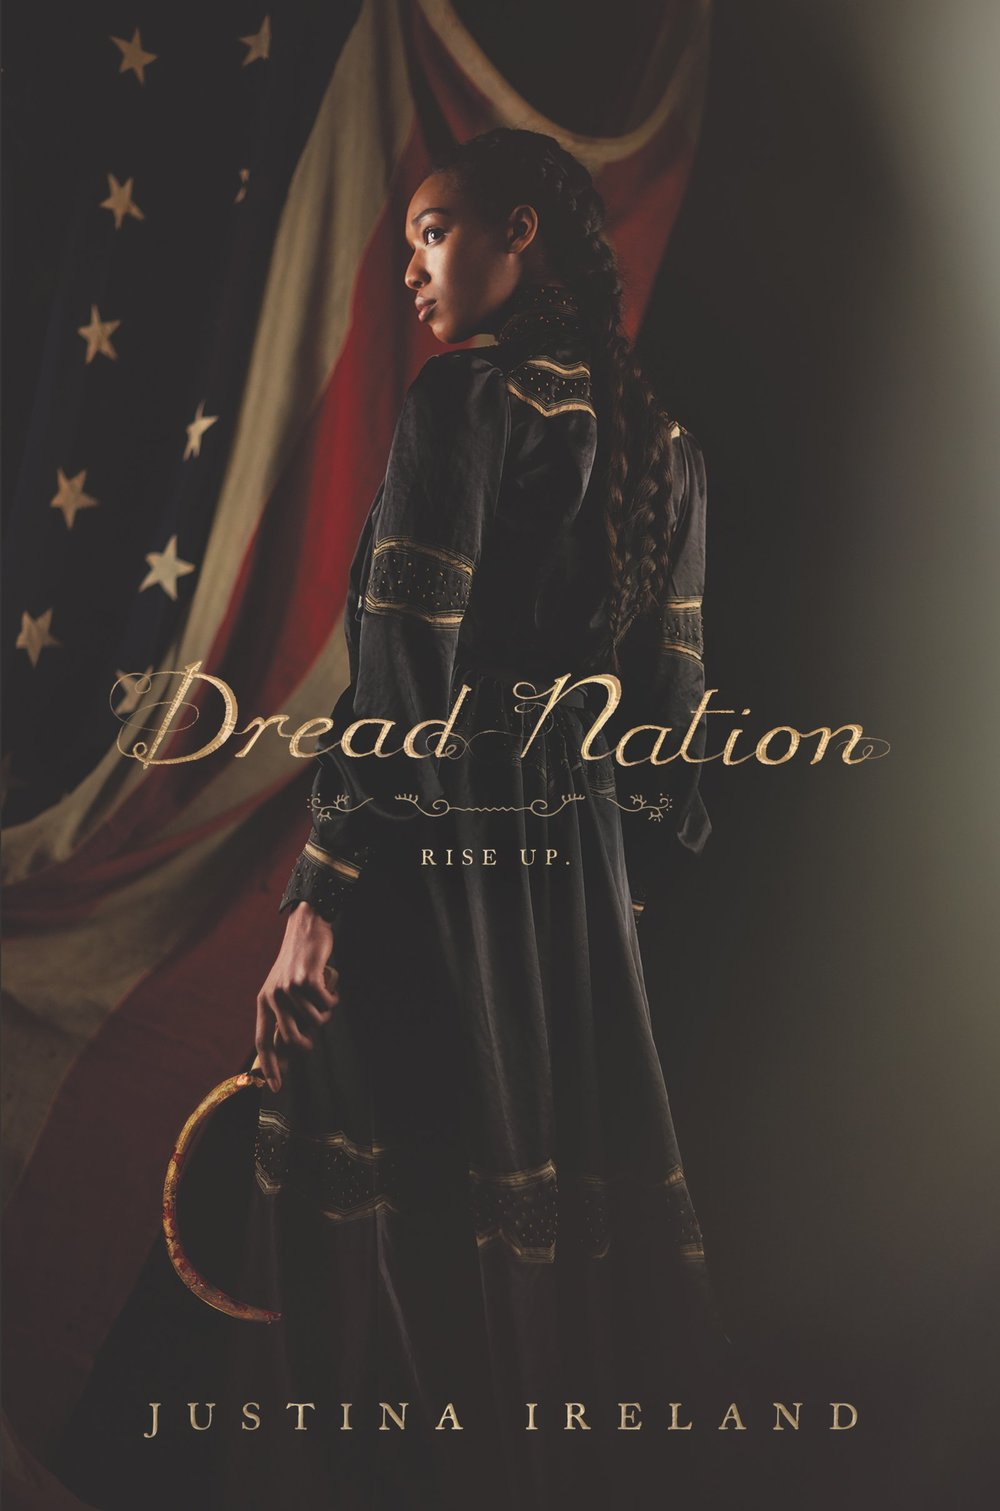 Dread Nation - Jane McKeene was born two days before the dead began to walk the battlefields of Gettysburg and Chancellorsville—derailing the War Between the States and changing America forever. In this new nation, safety for all depends on the work of a few, and laws like the Native and Negro Reeducation Act require certain children attend combat schools to learn to put down the dead. But there are also opportunities—and Jane is studying to become an Attendant, trained in both weaponry and etiquette to protect the well-to-do. It's a chance for a better life for Negro girls like Jane. After all, not even being the daughter of a wealthy white Southern woman could save her from society's expectations.But that's not a life Jane wants. Almost finished with her education at Miss Preston's School of Combat in Baltimore, Jane is set on returning to her Kentucky home and doesn't pay much mind to the politics of the eastern cities, with their talk of returning America to the glory of its days before the dead rose. But when families around Baltimore County begin to go missing, Jane is caught in the middle of a conspiracy, one that finds her in a desperate fight for her life against some powerful enemies. And the restless dead, it would seem, are the least of her problems.At once provocative, terrifying, and darkly subversive, Dread Nation is Justina Ireland's stunning vision of an America both foreign and familiar—a country on the brink, at the explosive crossroads where race, humanity, and survival meet.